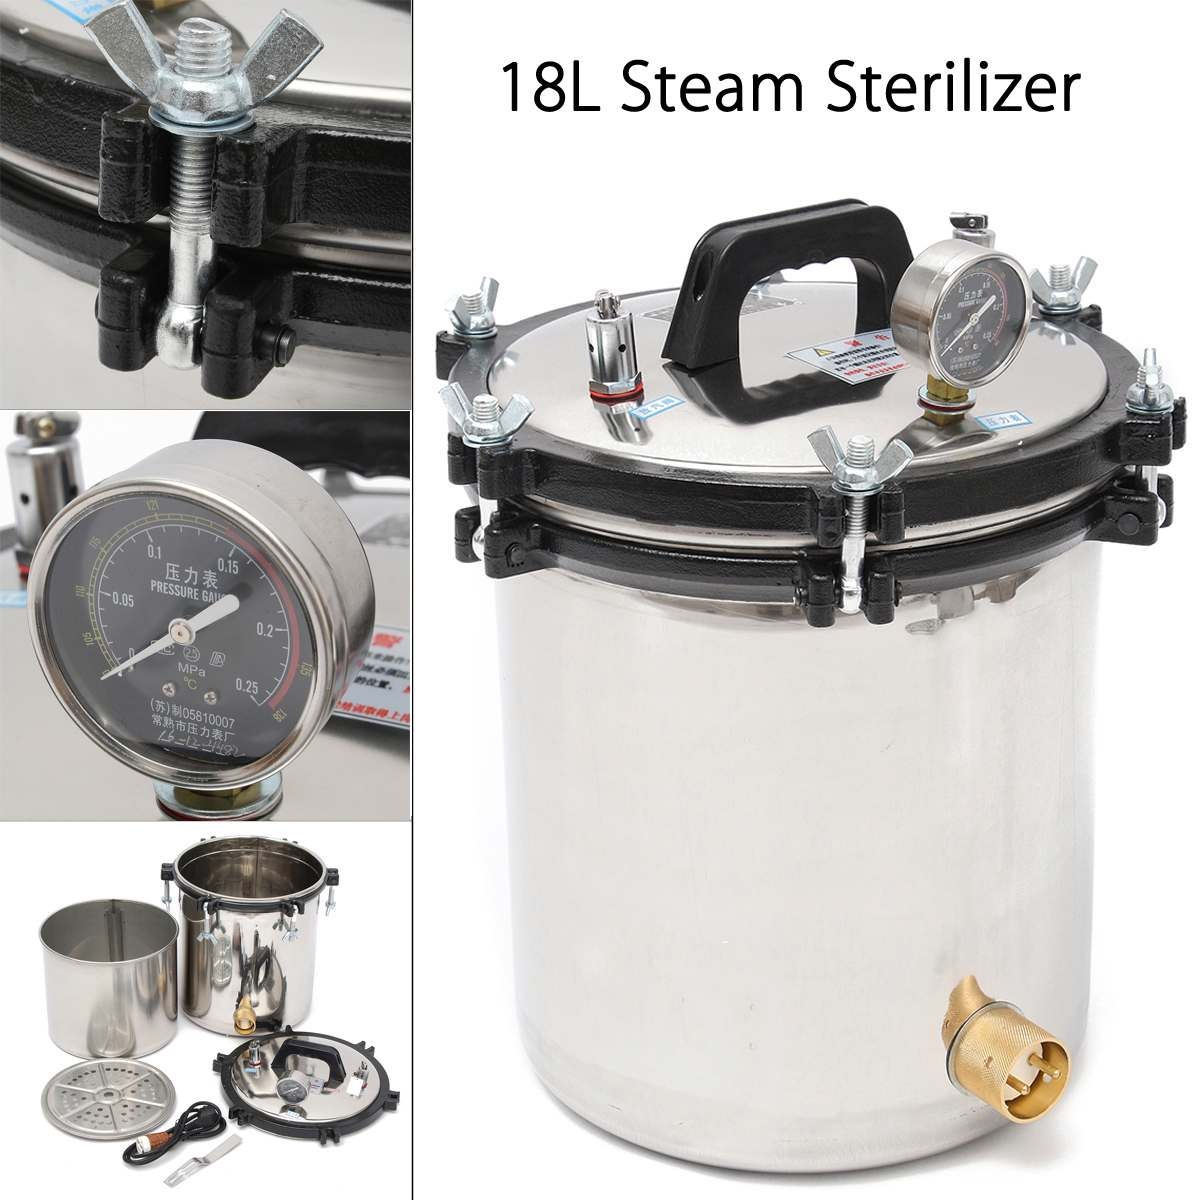 220V 18L Stainless Steam Medical Steam Sterilizer Autoclave Sterilizer Stainless Steel Dual Heating Disinfect Equipment for Lab220V 18L Stainless Steam Medical Steam Sterilizer Autoclave Sterilizer Stainless Steel Dual Heating Disinfect Equipment for Lab